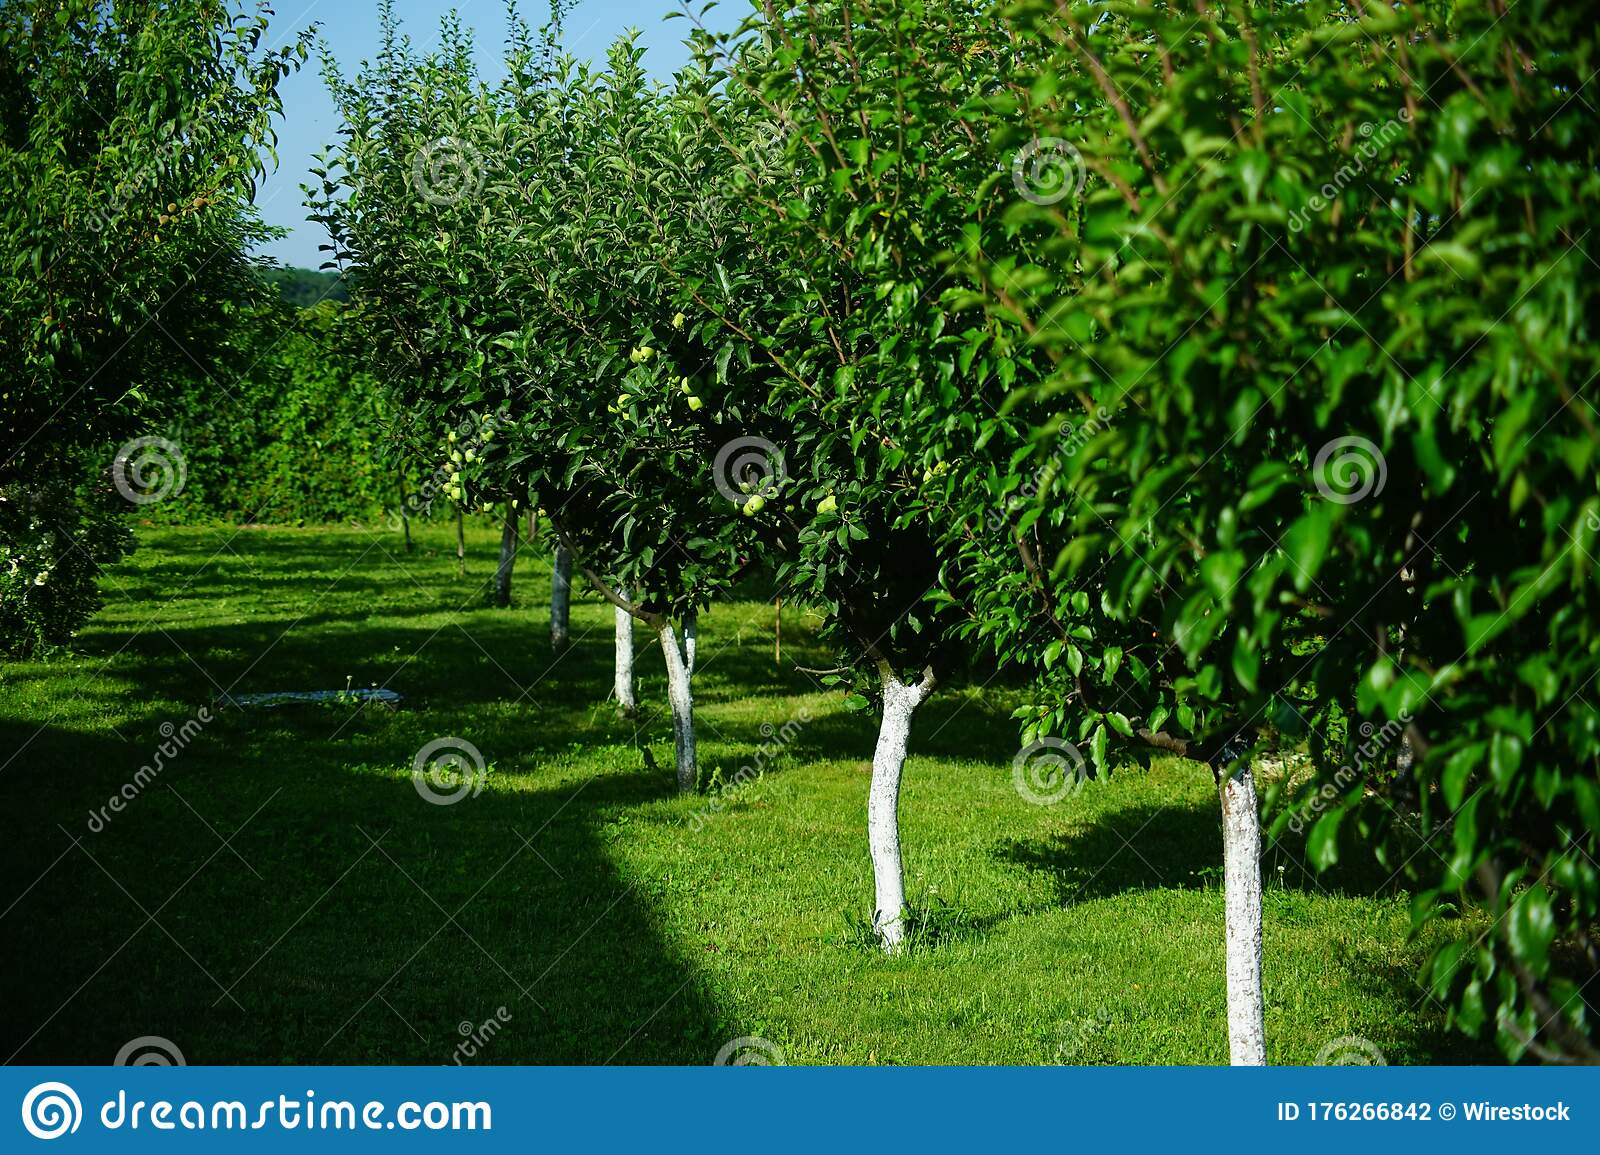 Small European Orchard In The Summer Stock Photo - Image of abundance,  small: 176266842